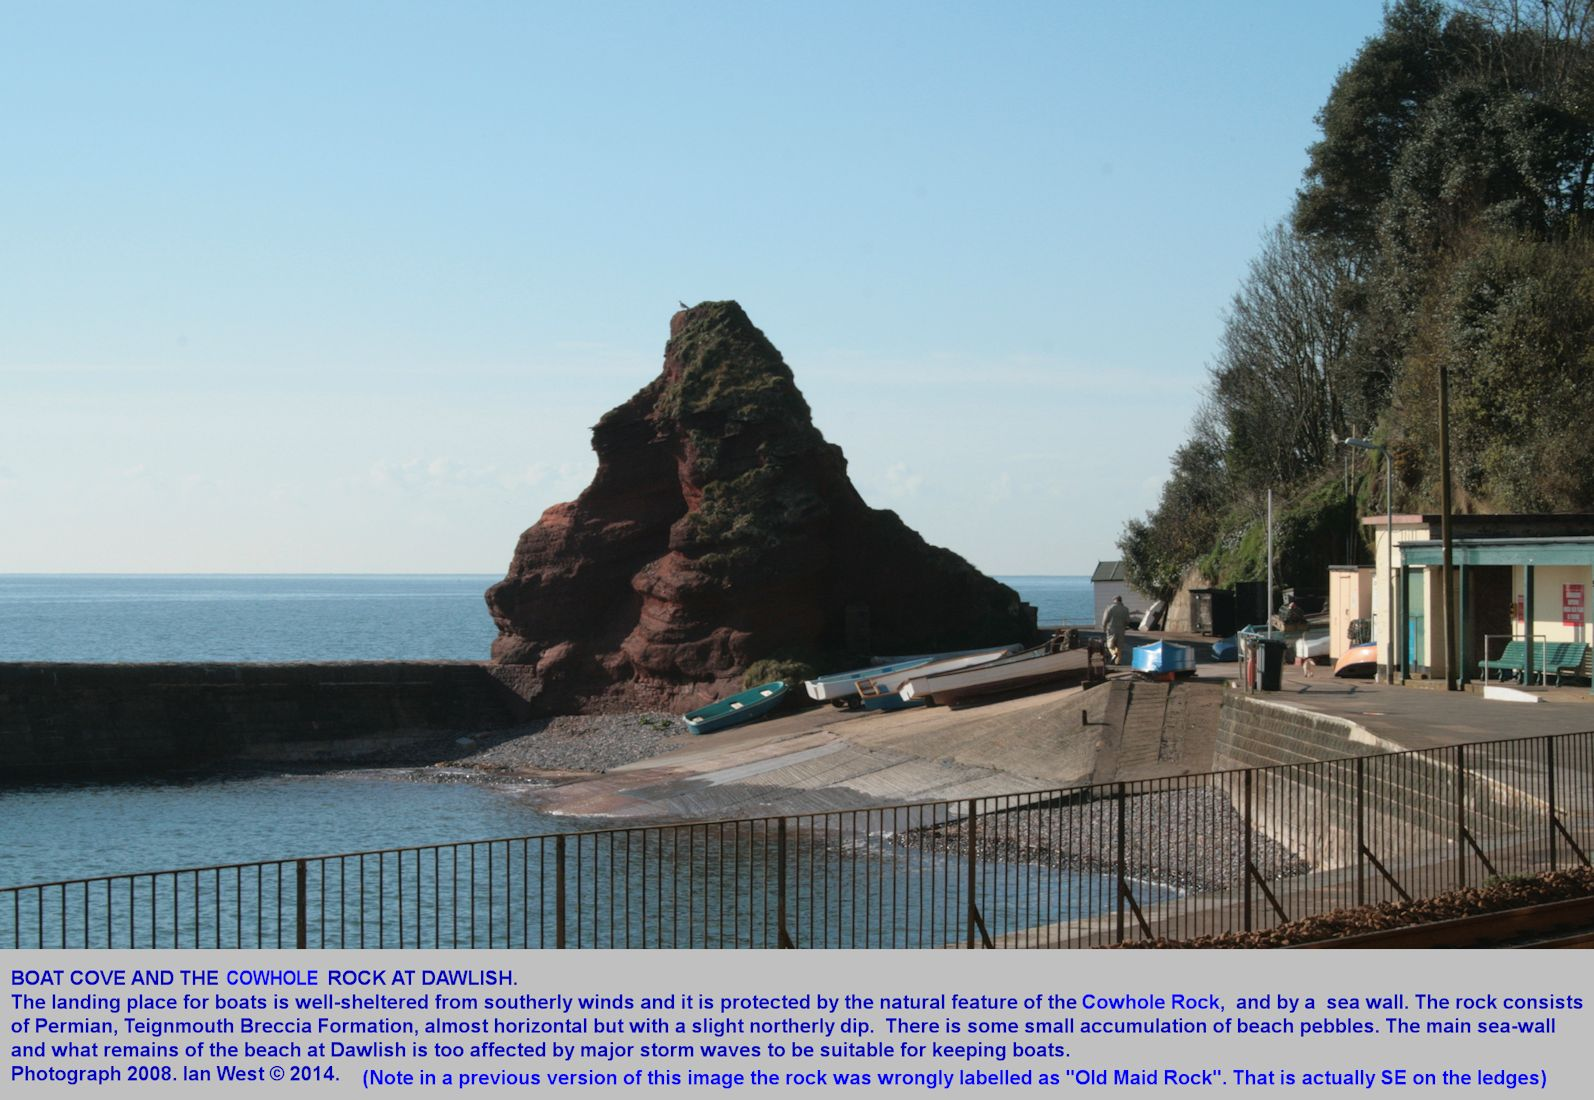 Boat Cove and Cowhole Rock, a sea stack of Teignmouth Breccia, incorporated into a sea wall, Dawlish, Devon